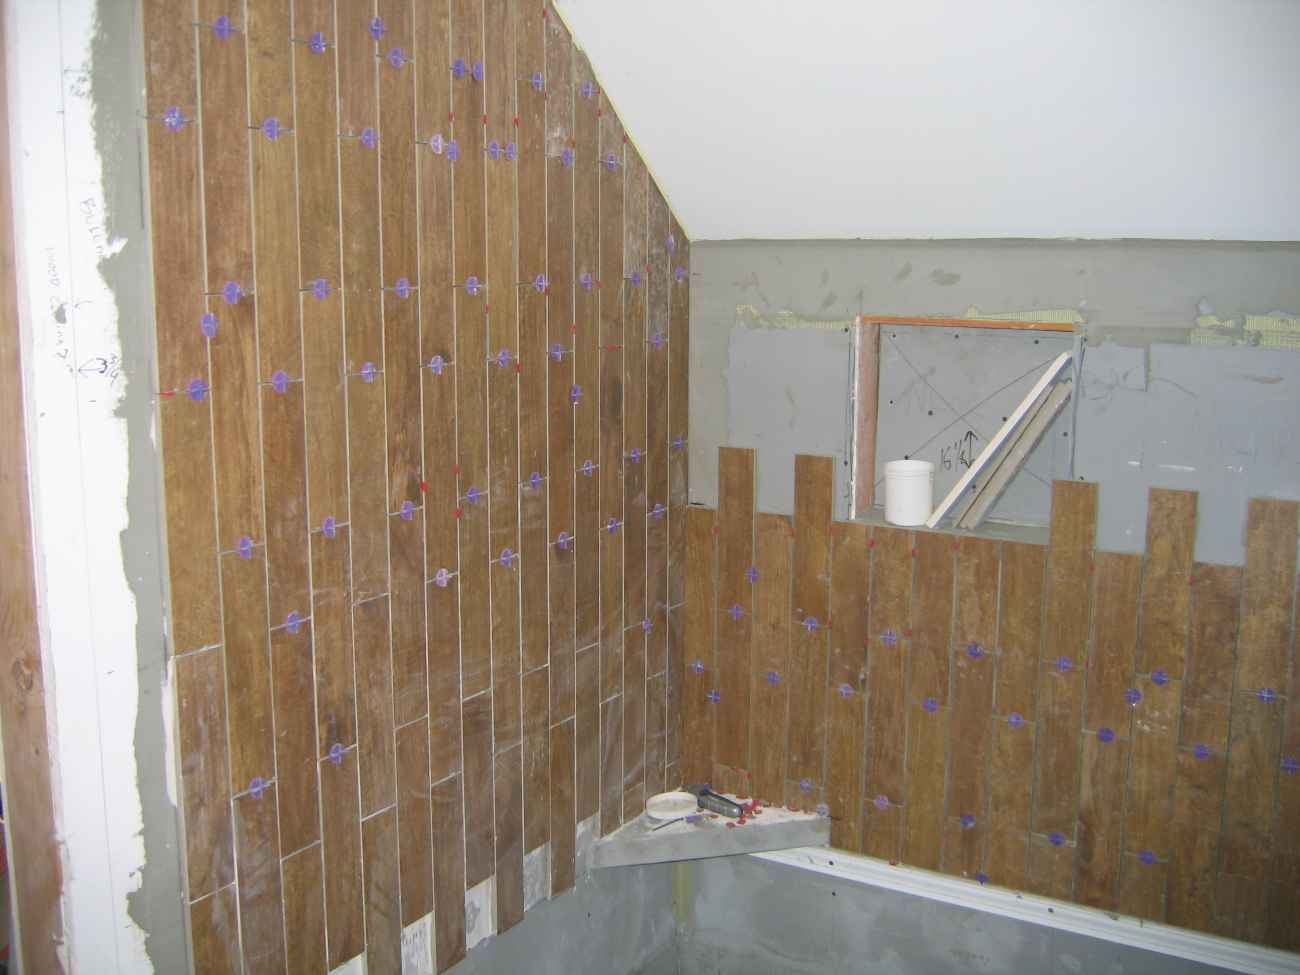 Ceramic tile for bathroom walls - Cool Pictures Of Bathroom Ceramic Wall Tile Bathroom Ceramic Tile